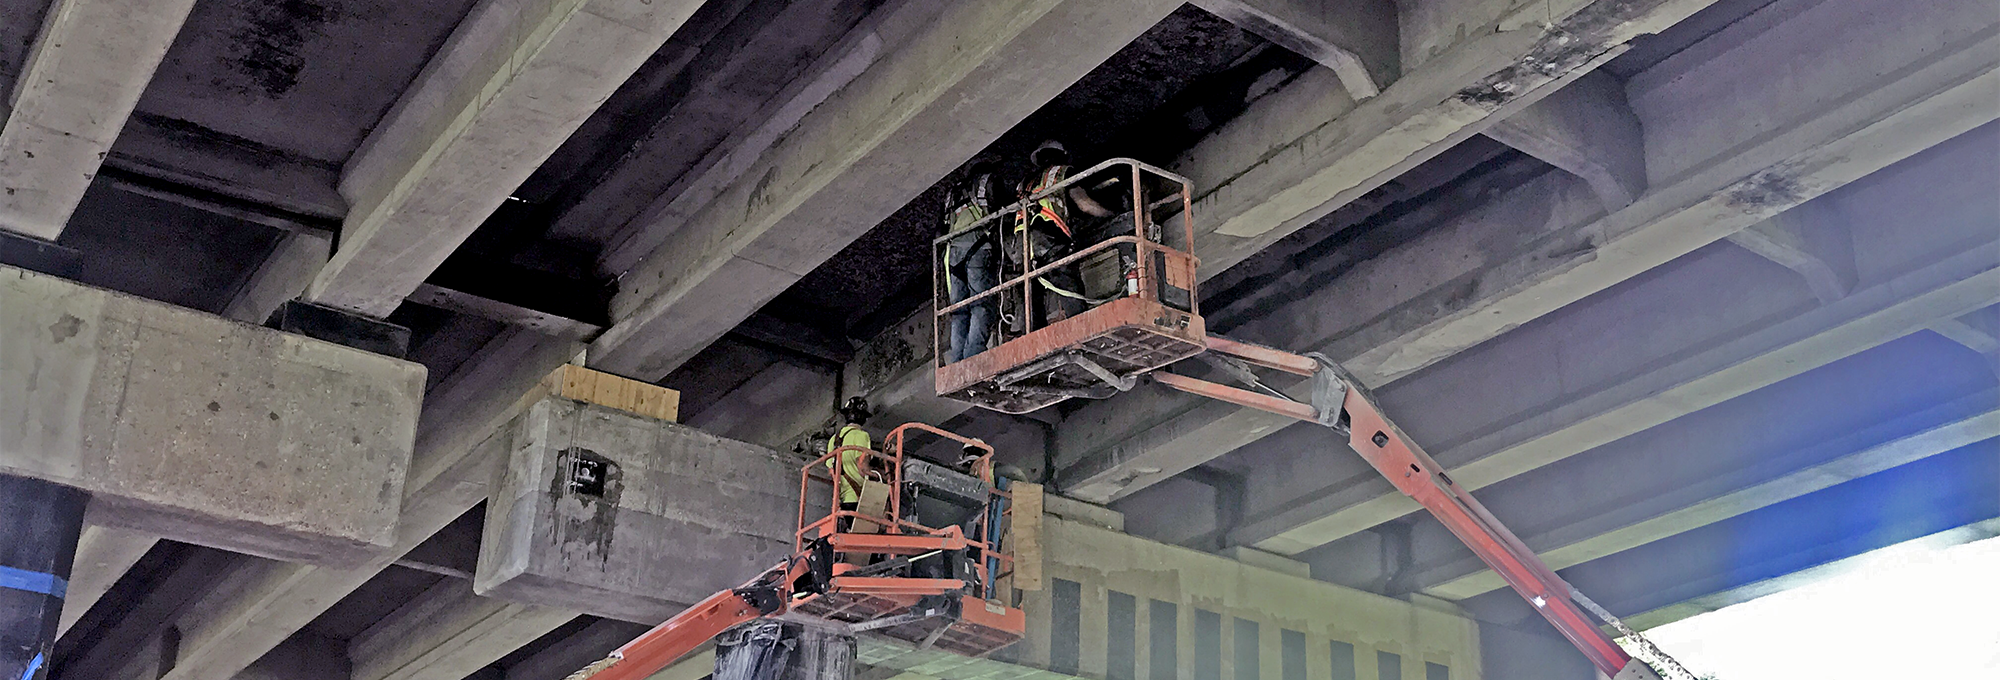 Workers stand on a lift underneath the bridge